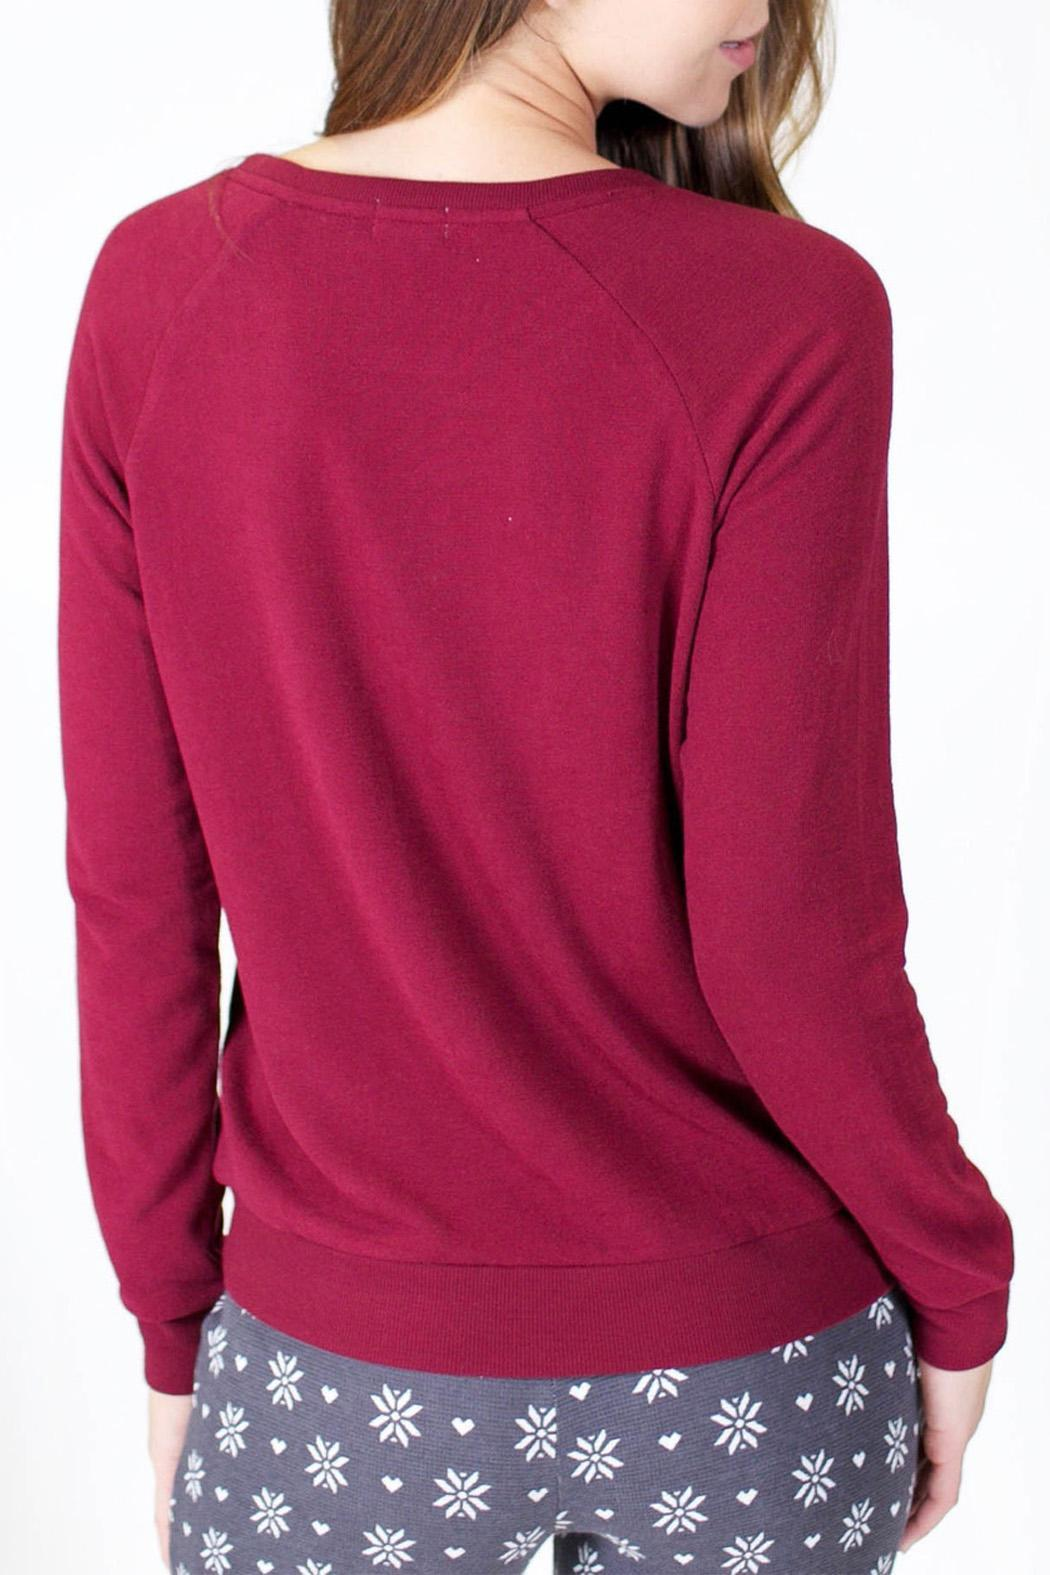 P.J. Salvage Long Sleeve Snuggle Sweater - Side Cropped Image